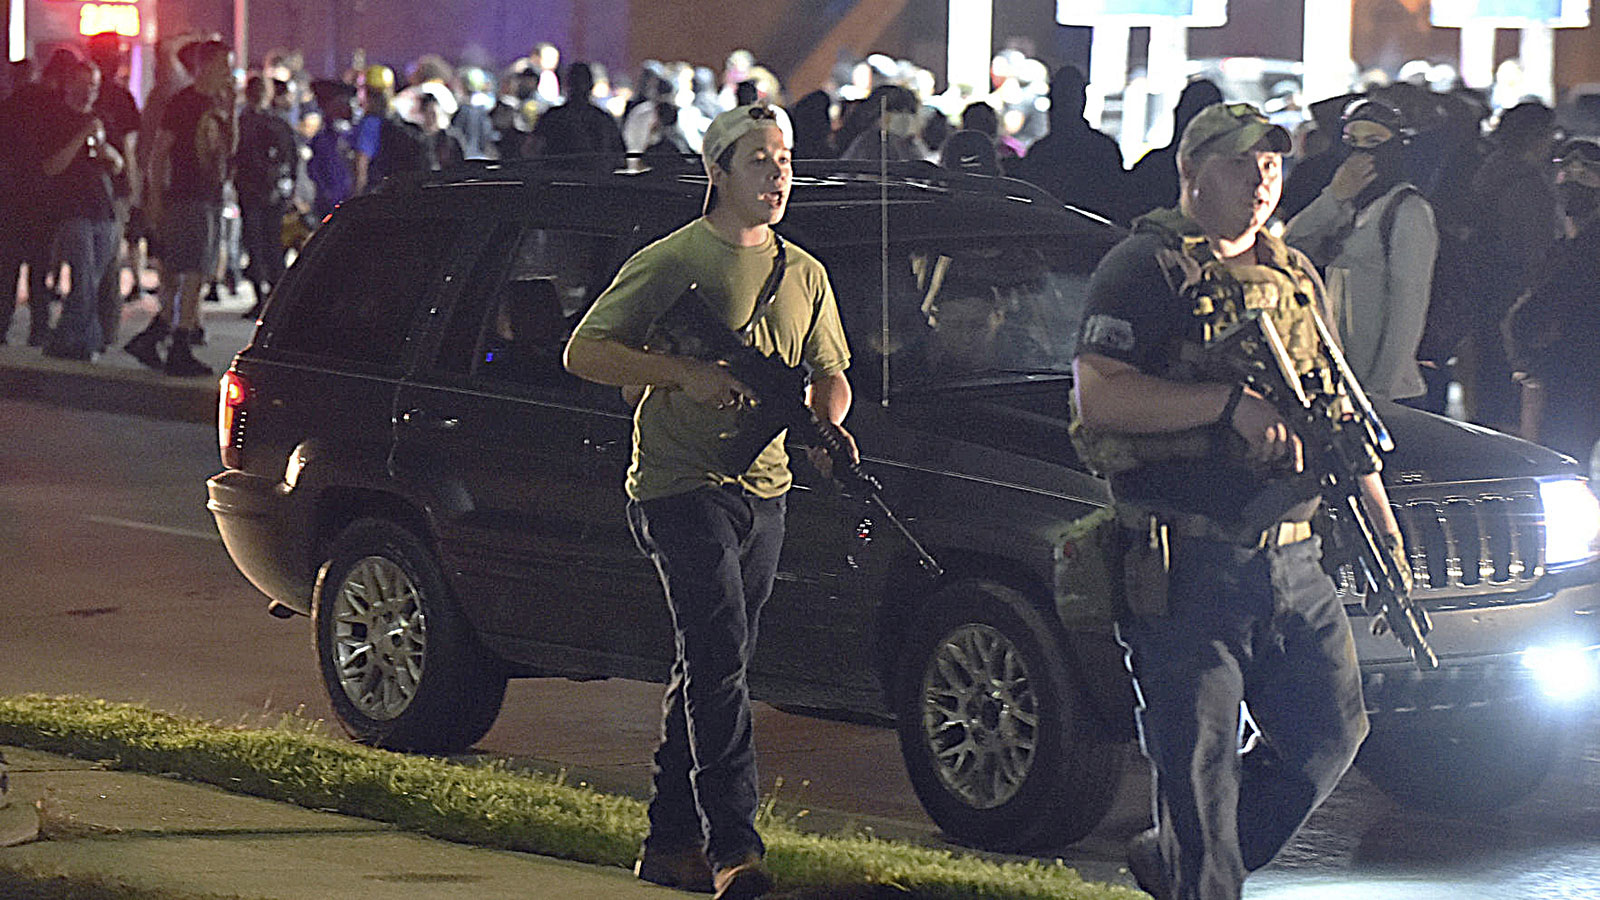 Kyle Rittenhouse, left with backwards cap, walks along Sheridan Road in Kenosha, Wisconsin, on Tuesday, August 25, with another armed civilian.